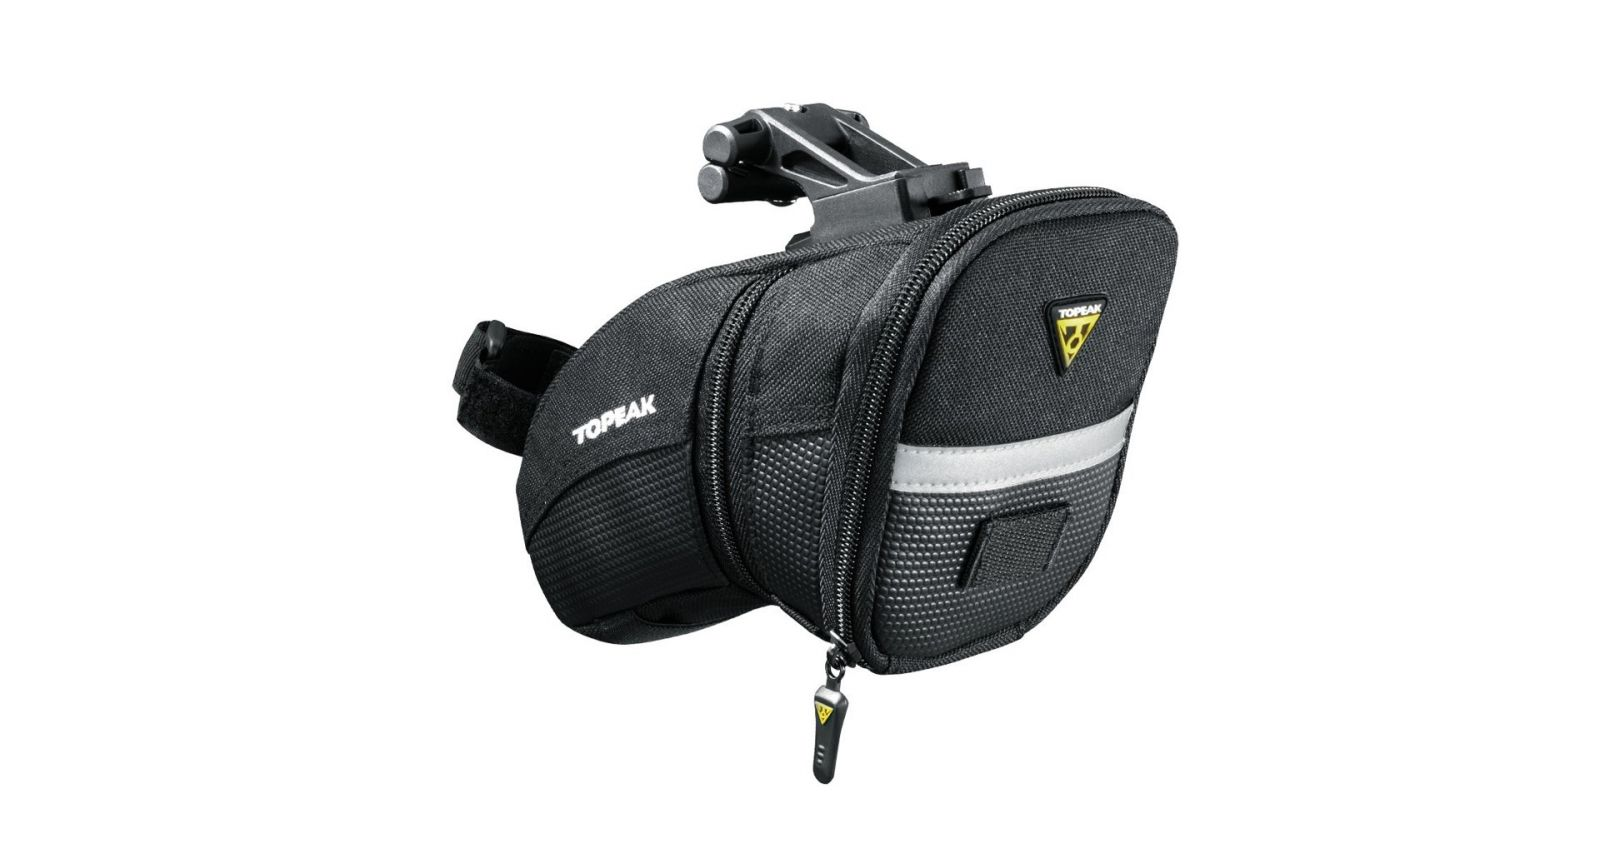 Brašna Topeak Aero Wedge Pack Medium s QuickClick